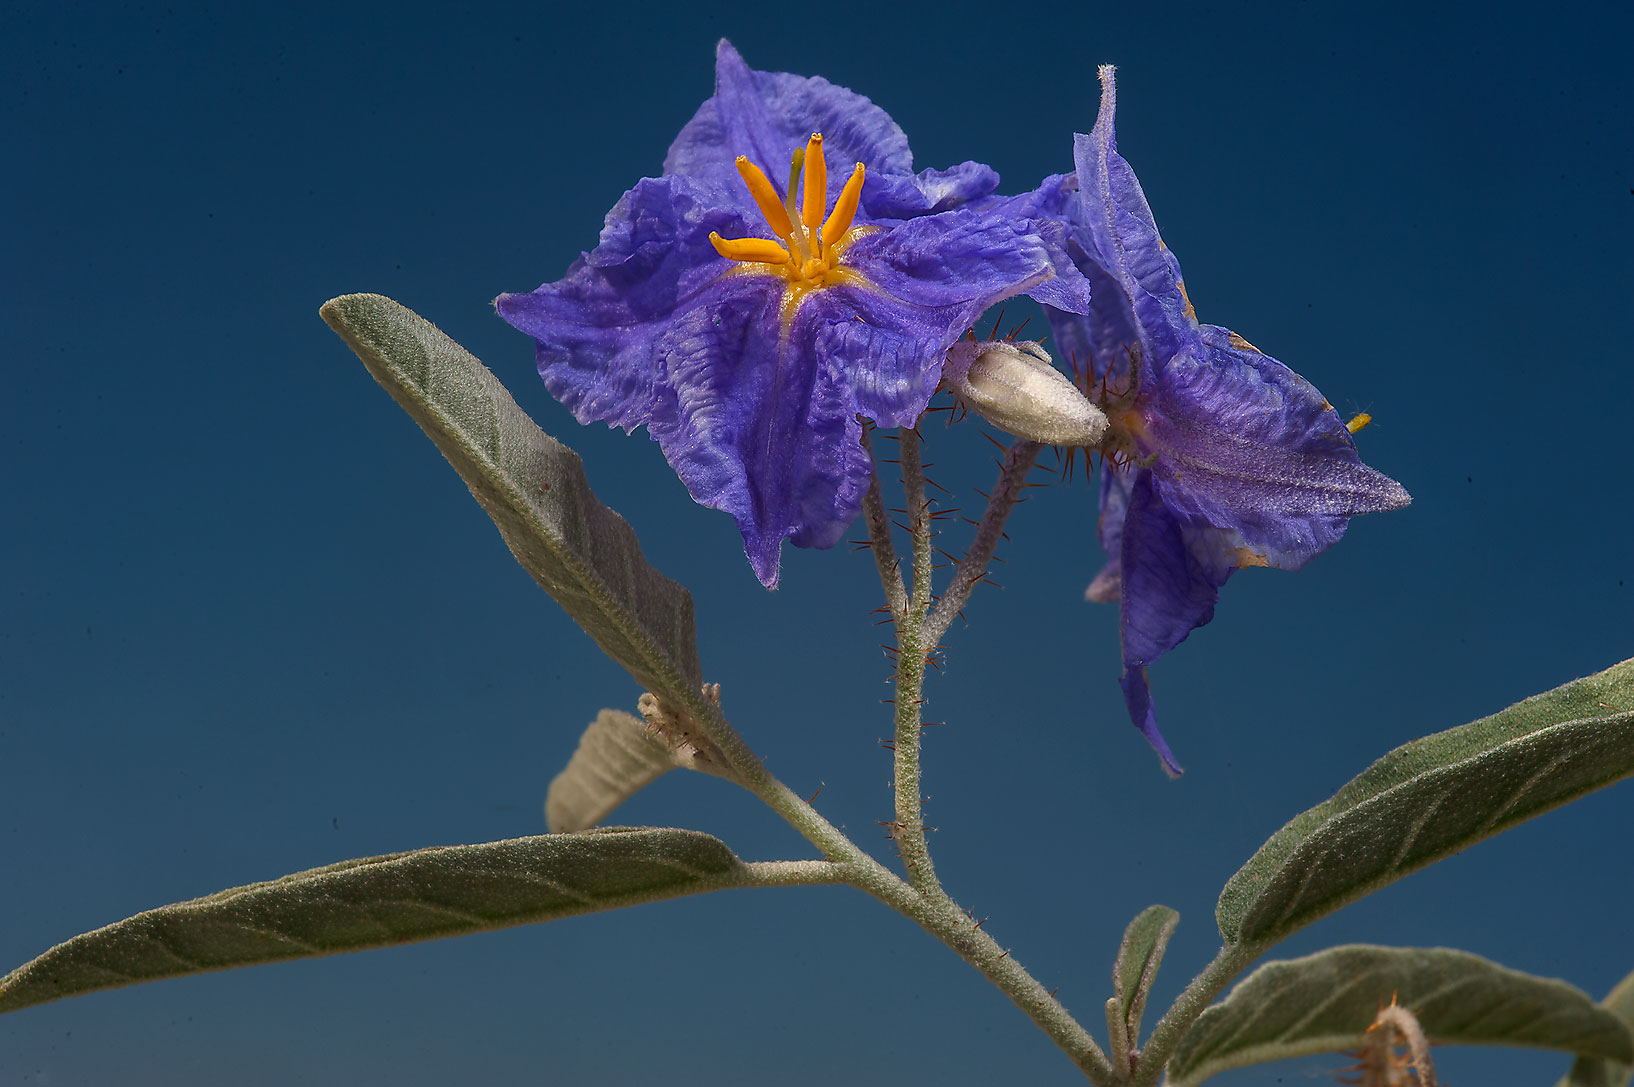 Blooming silverleaf nightshade (Solanum...Irkaya) Farms. South-western Qatar